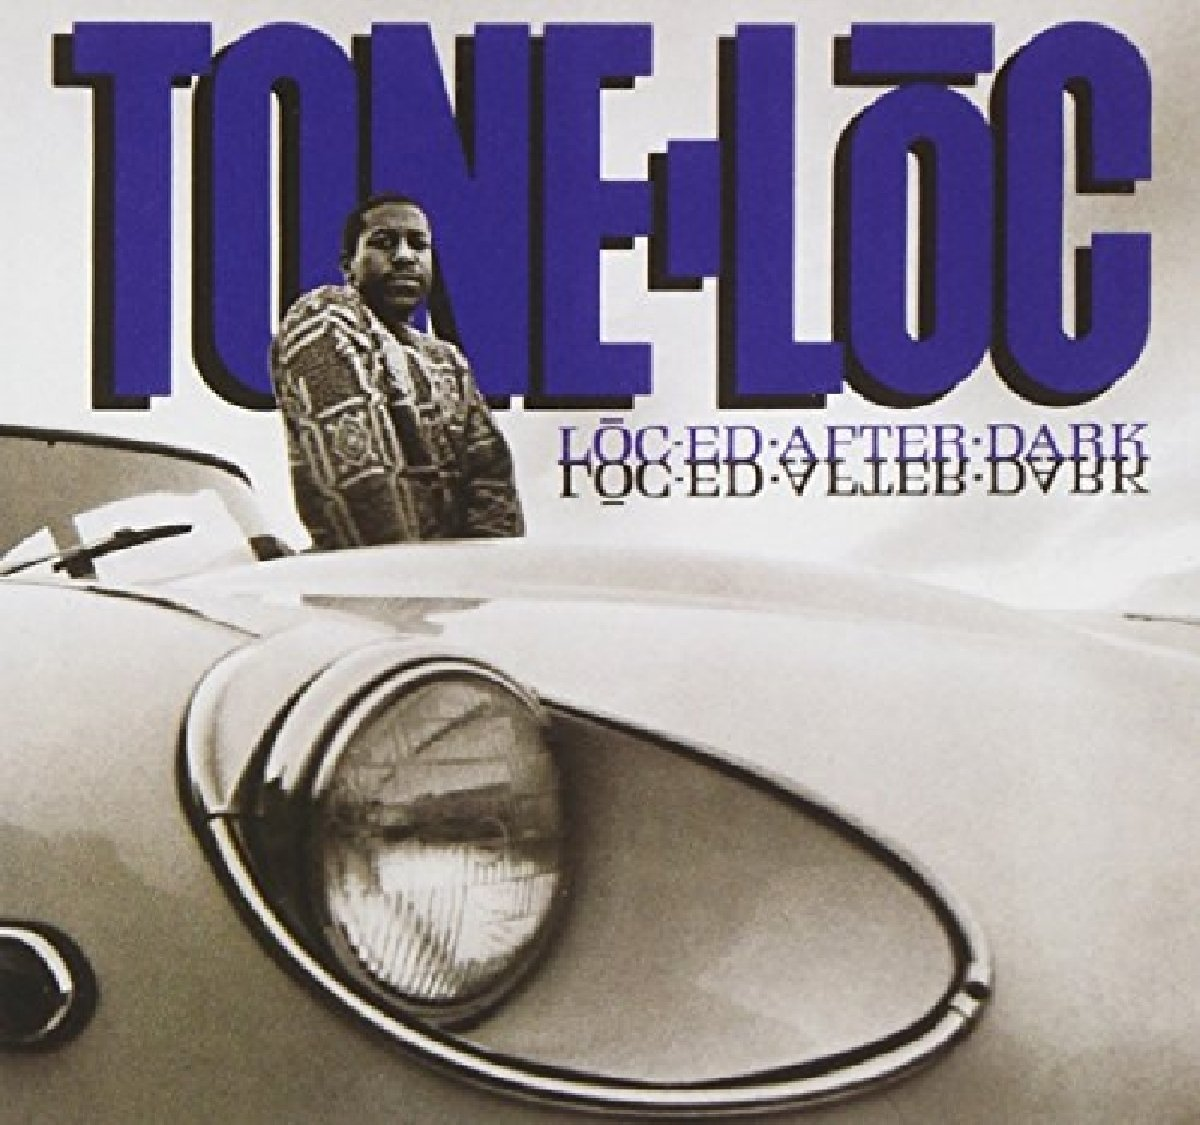 8.31 Tone-Loc - Loc-ed After Dark